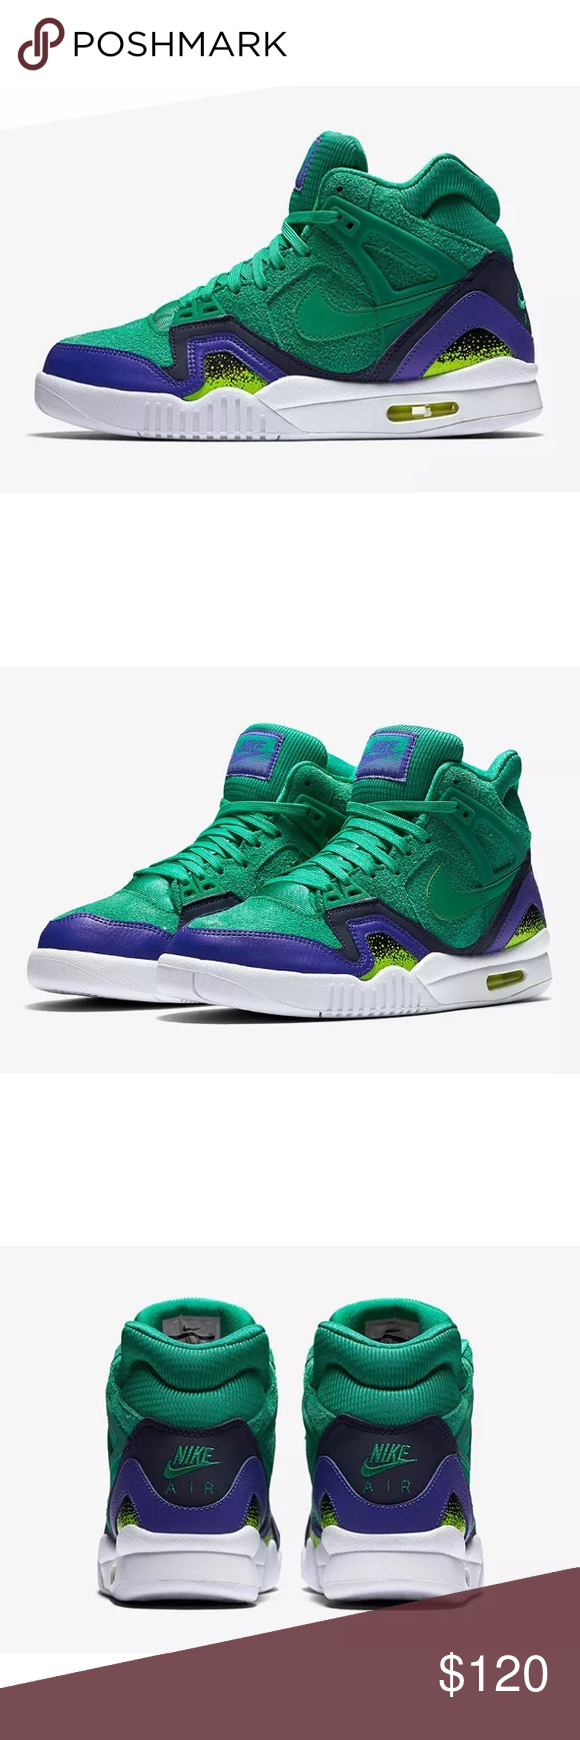 promo code cc93b 786e0 Nike Women s Air Tech Challenge 2 SE Green Sz 10 Stadium Green Style   857879-301 Size 10 New without box THROWBACK FAVORITE The Nike Air Tech  Challenge II ...